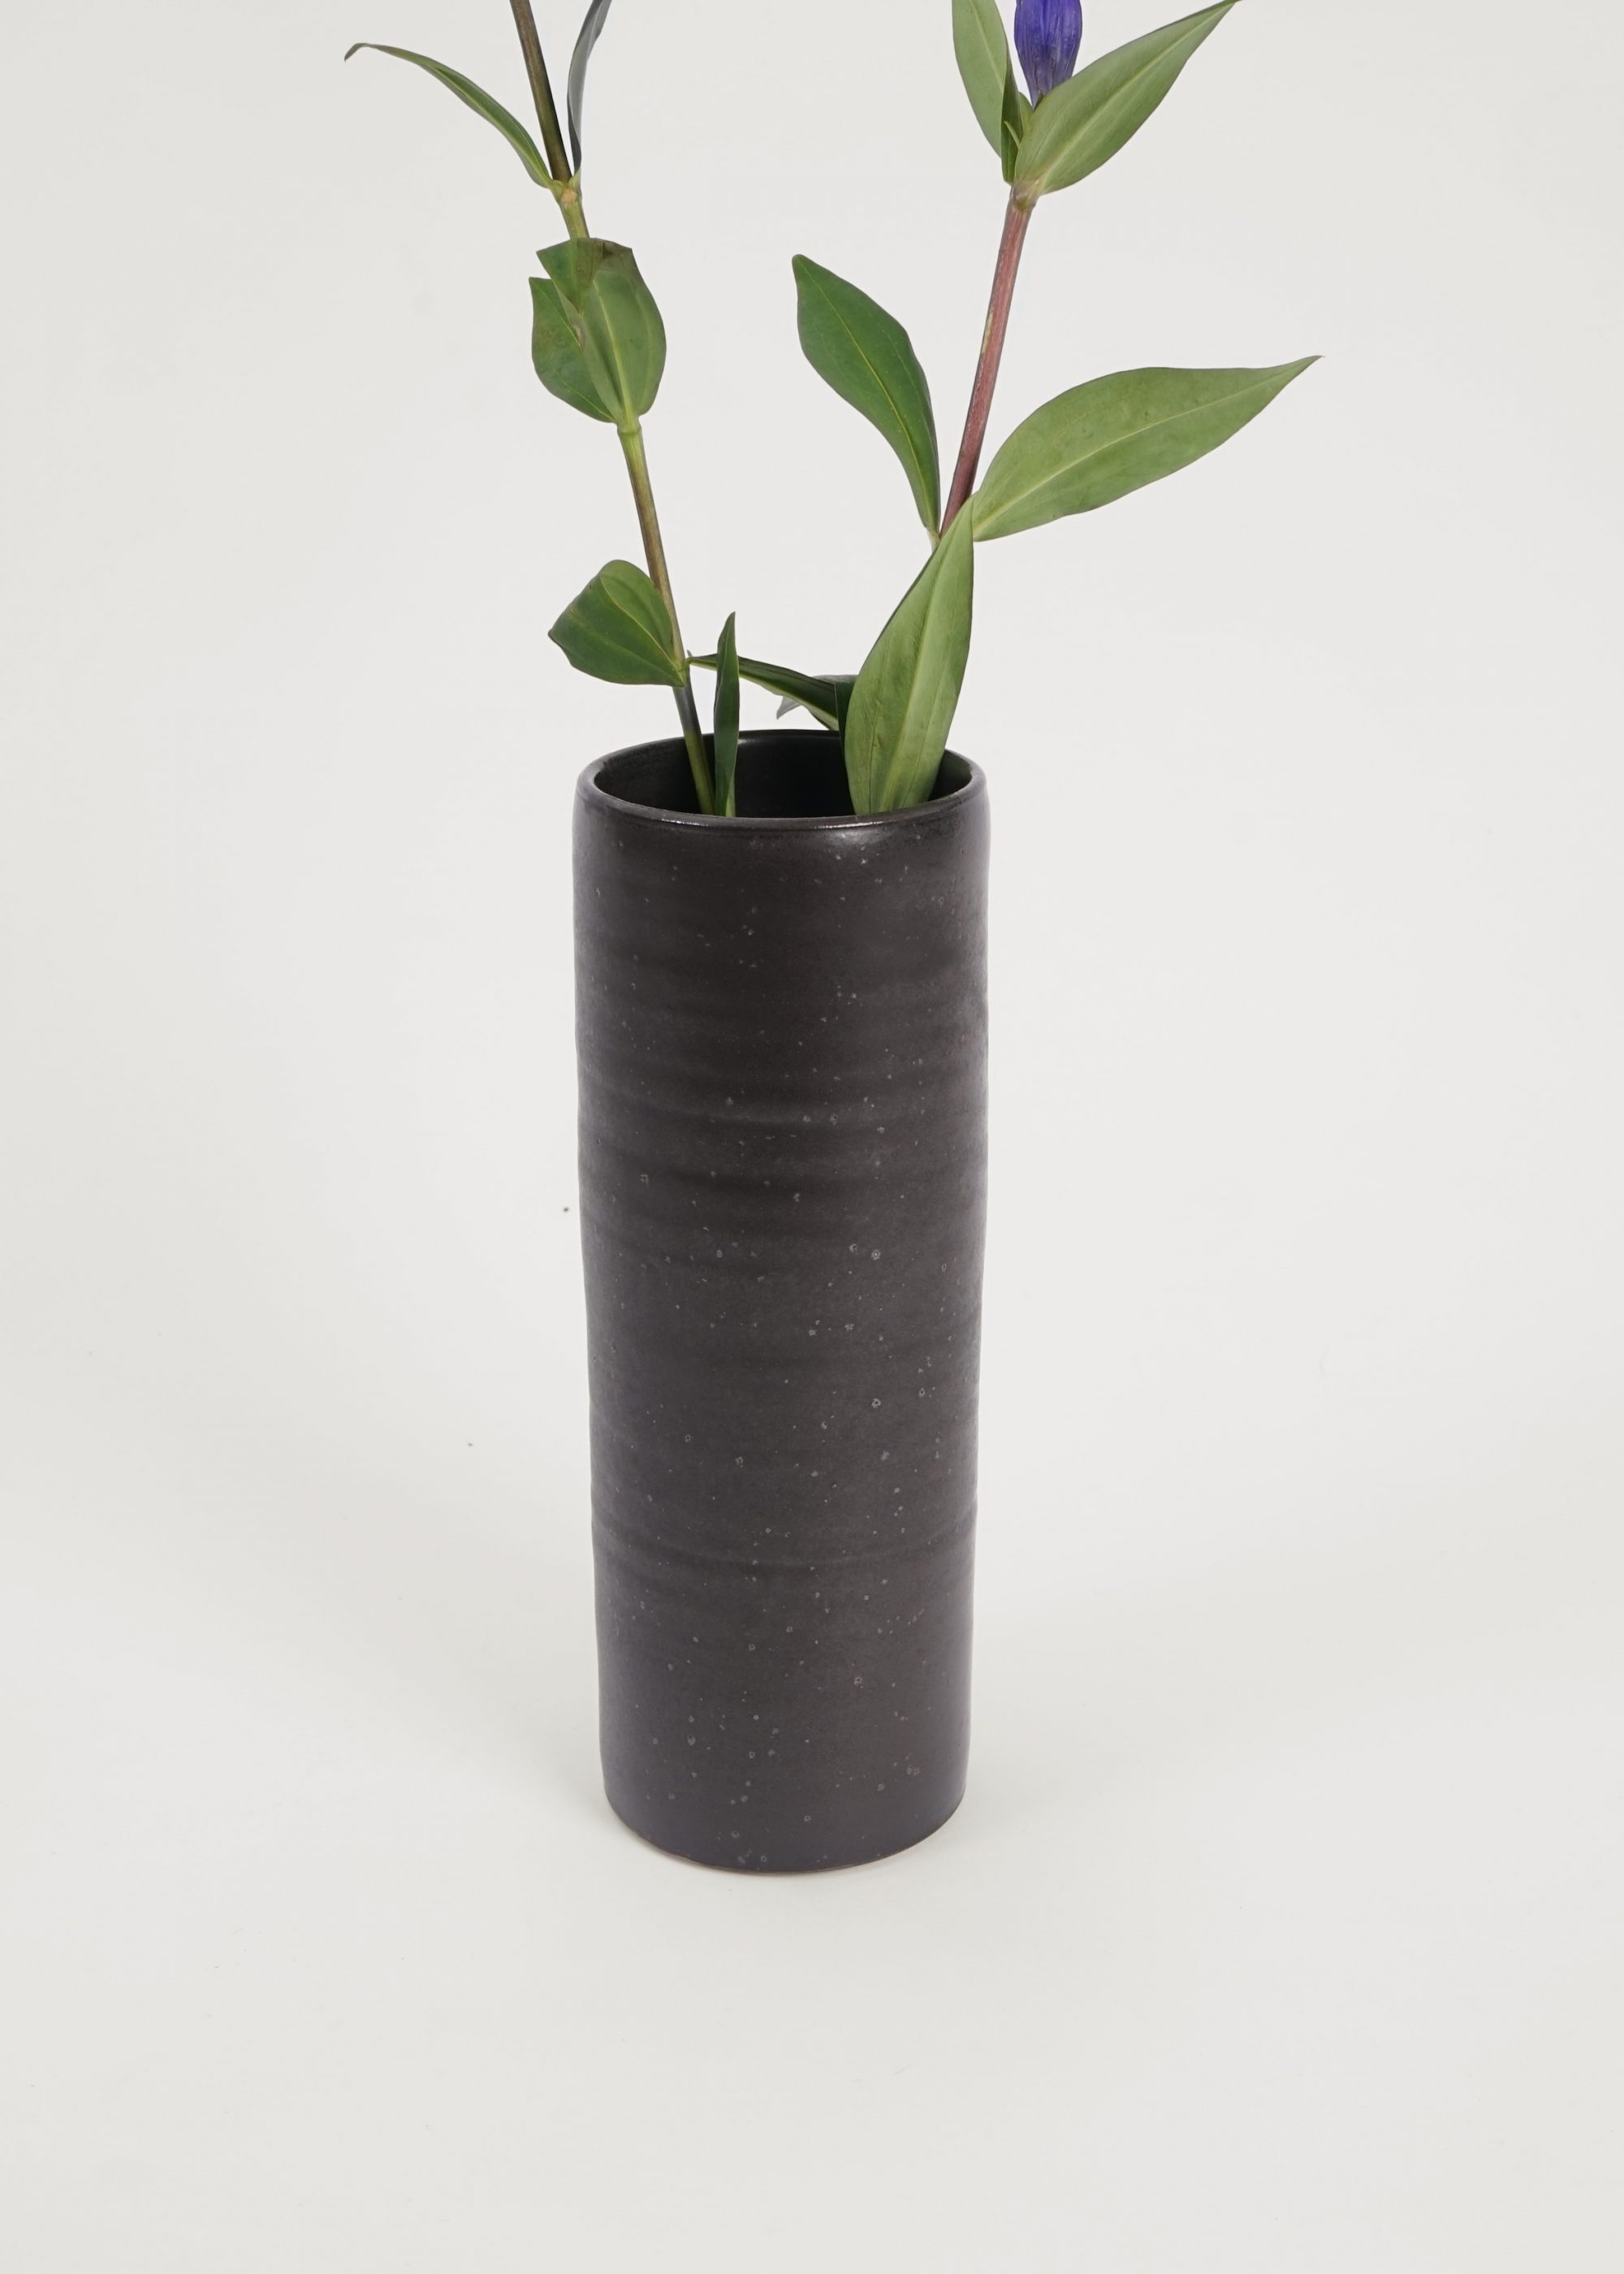 Product image for N° ICG3 Syrinx I Vase S